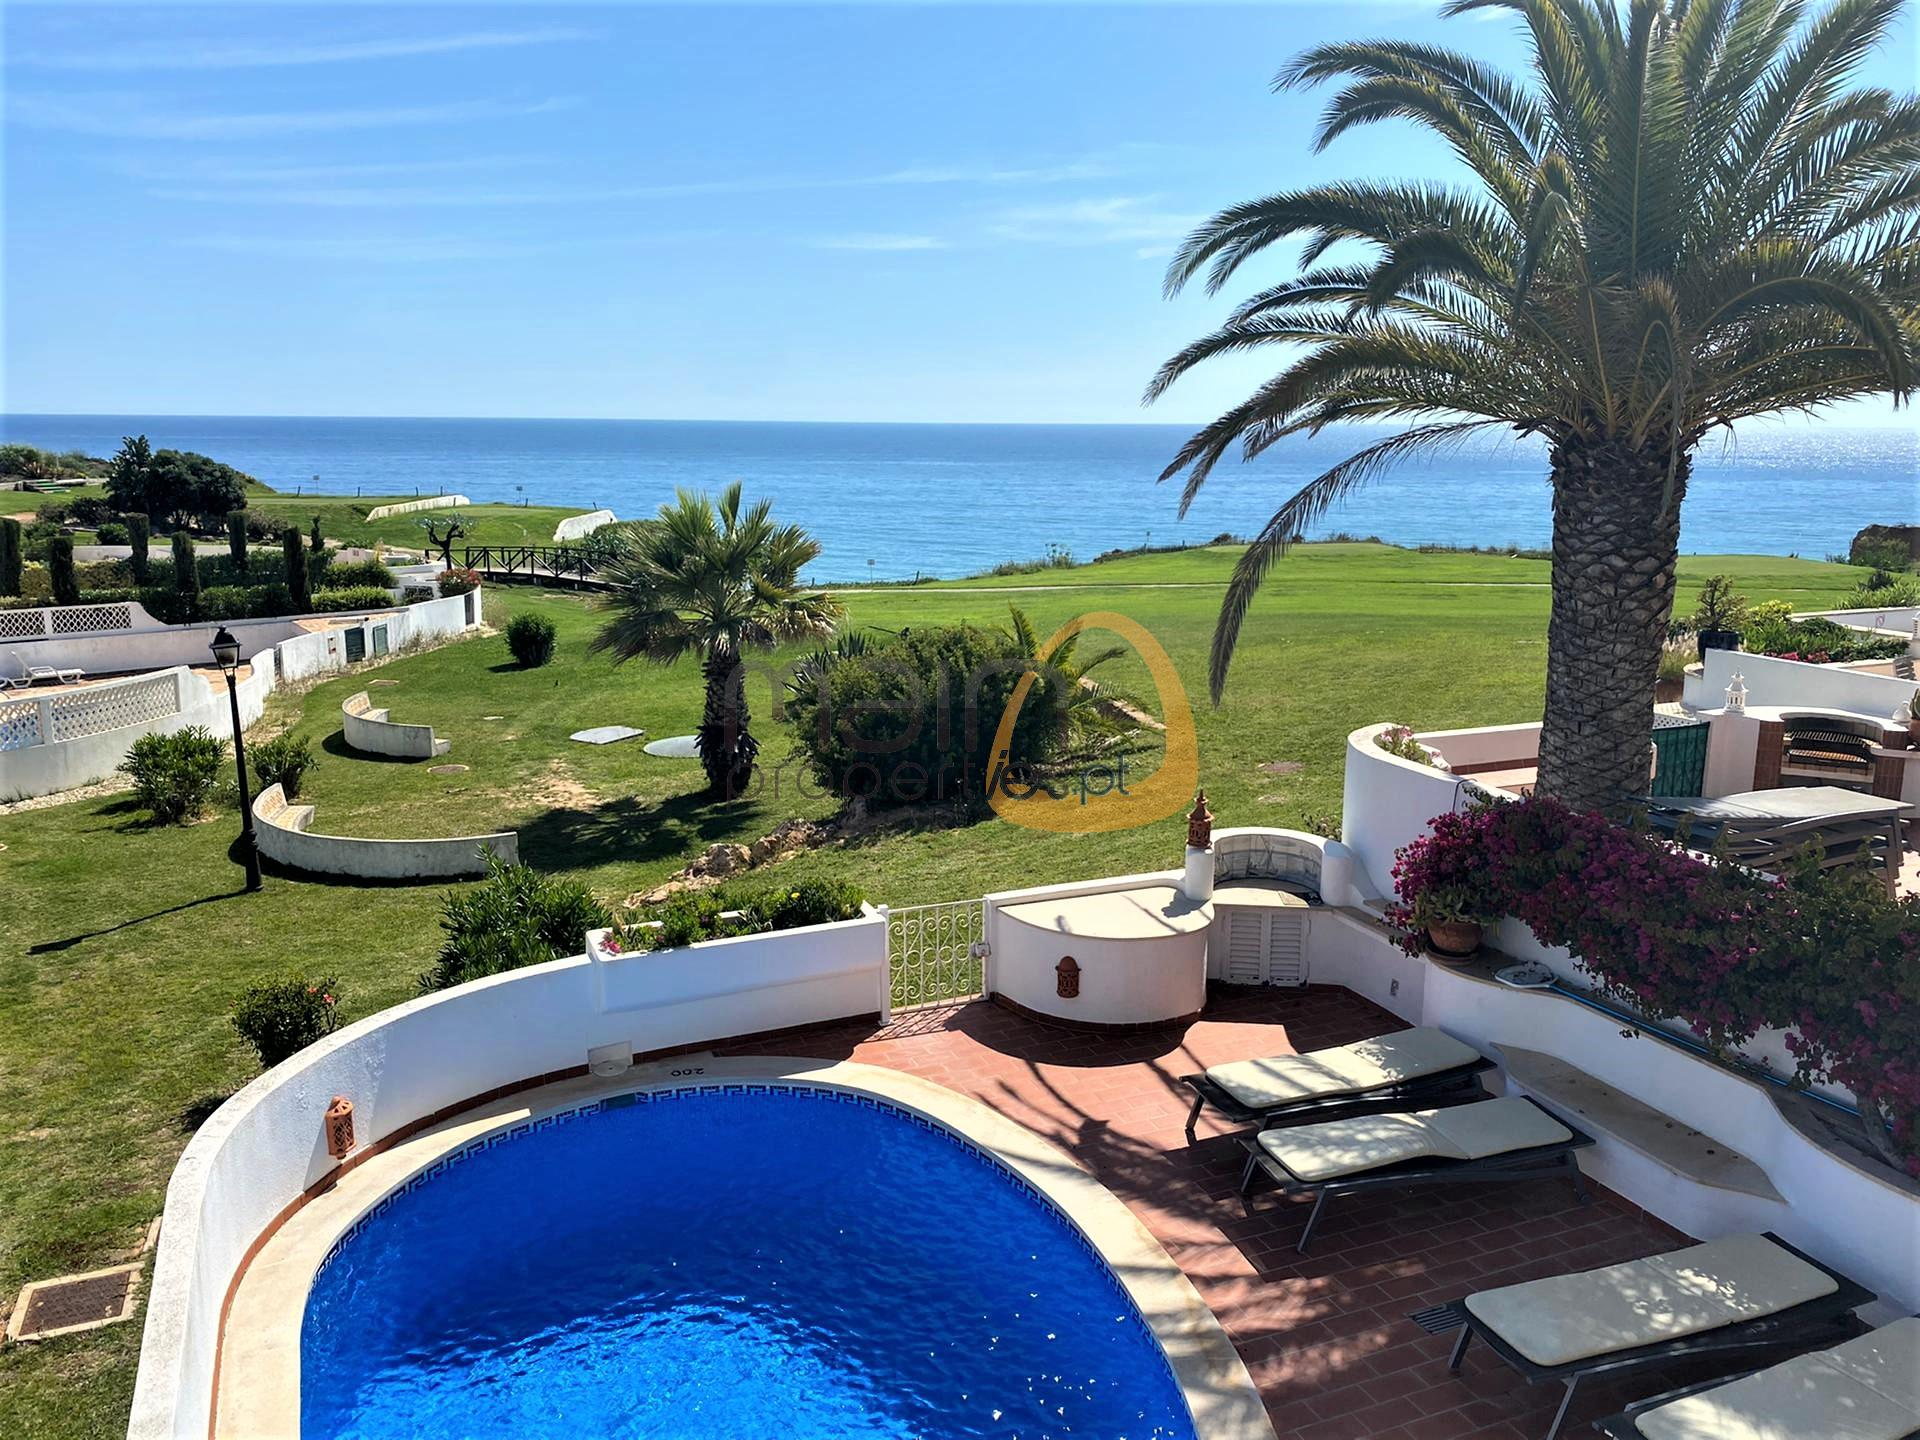 3 bedroom house with golf and sea view in Vale do Lobo